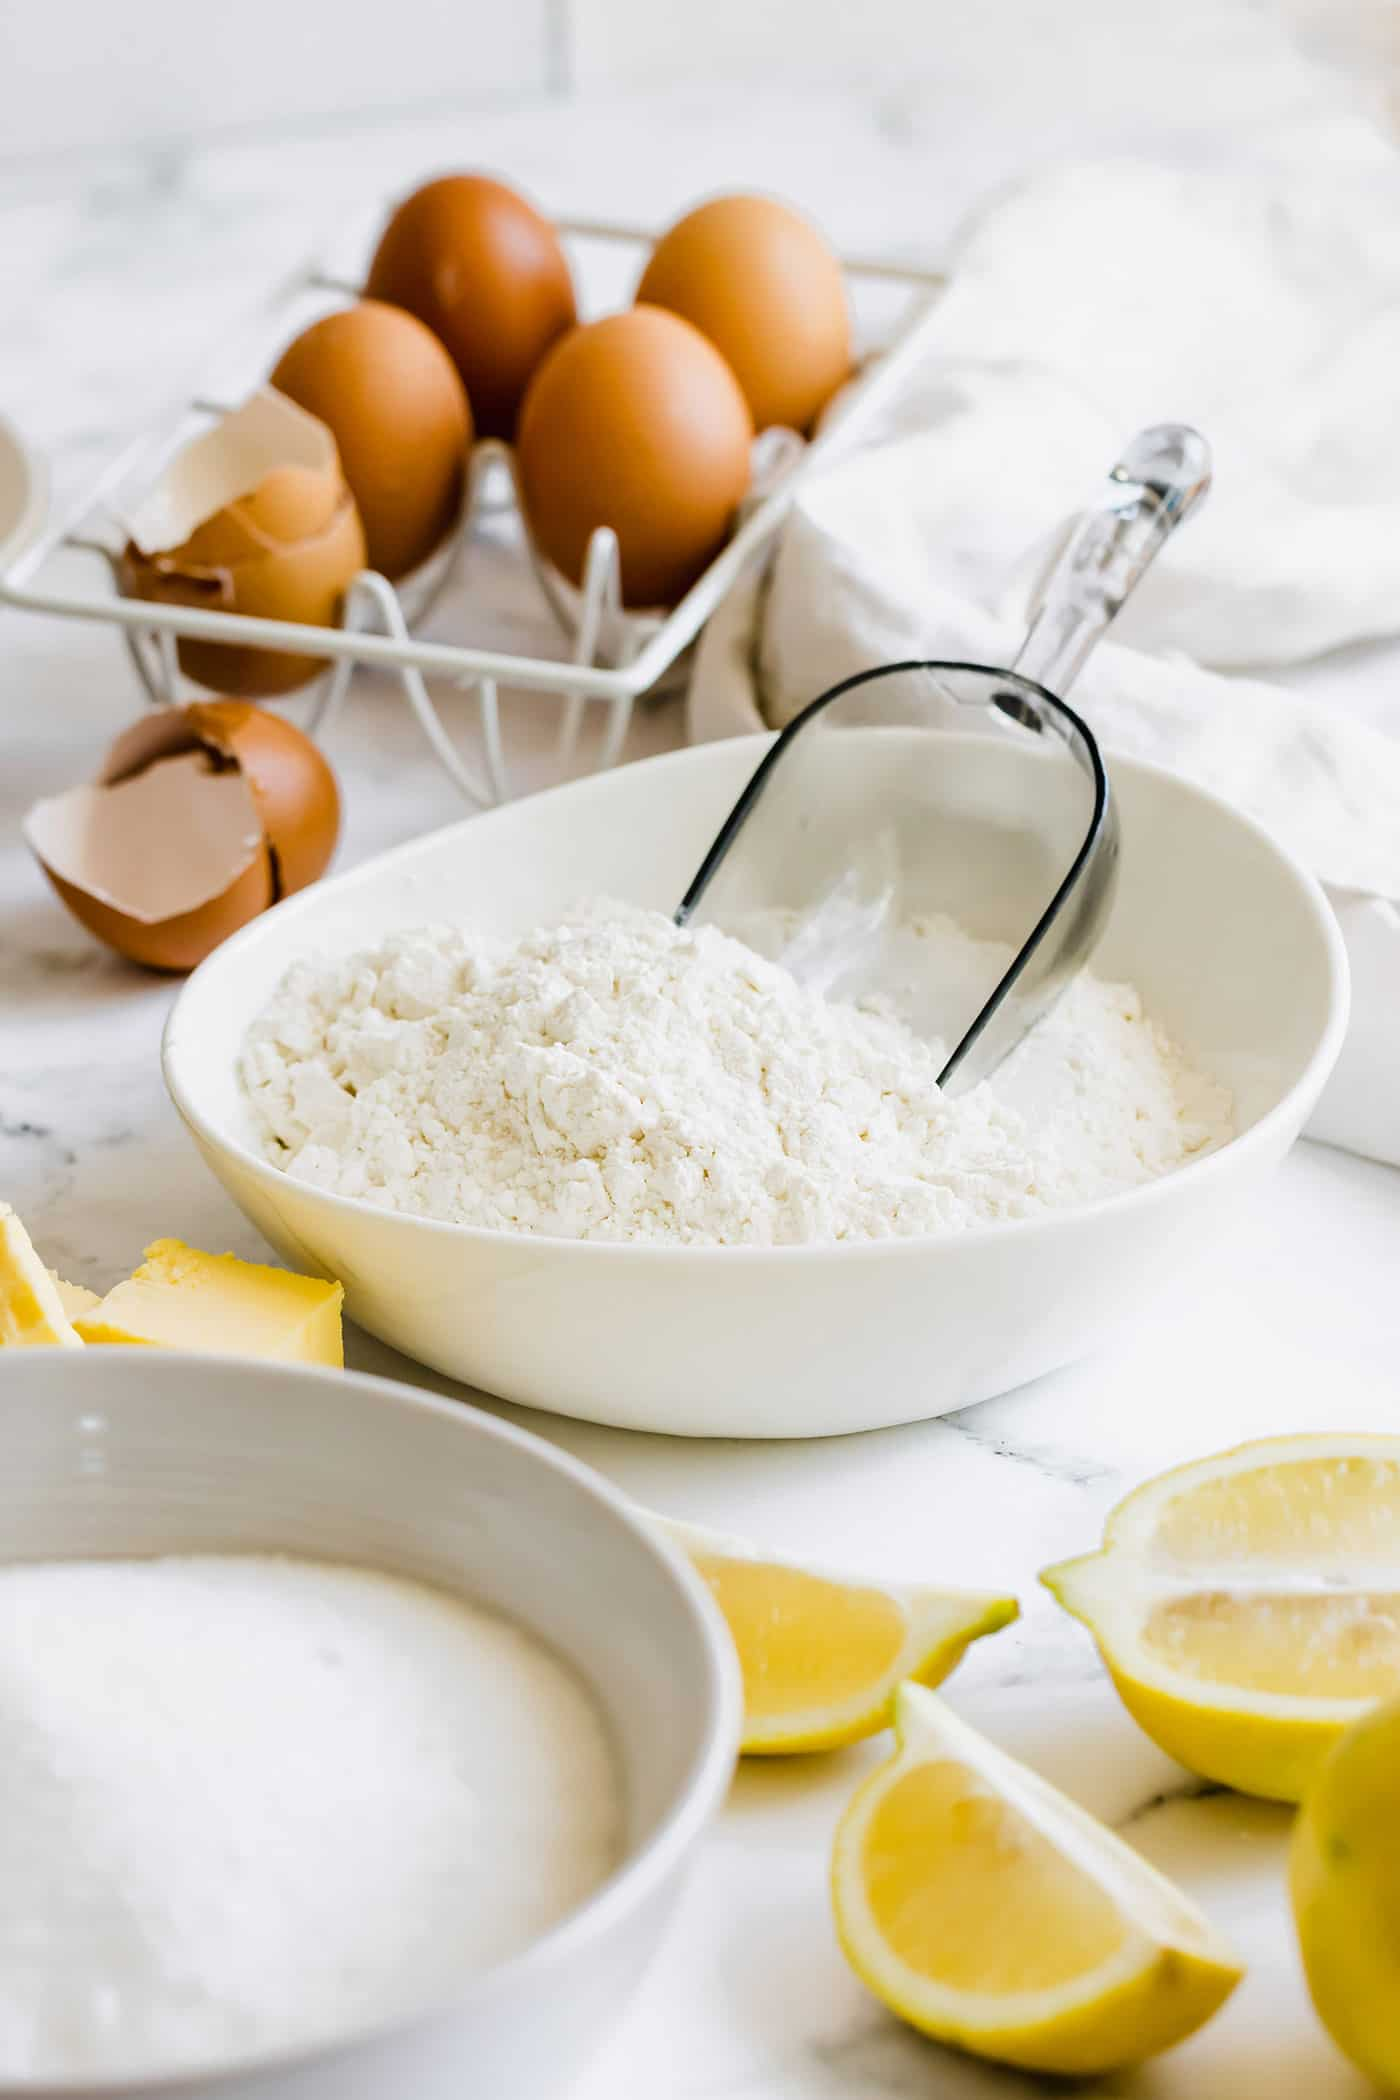 bowls of flour and sugar, plus fresh lemons, cubes of butter, and eggs